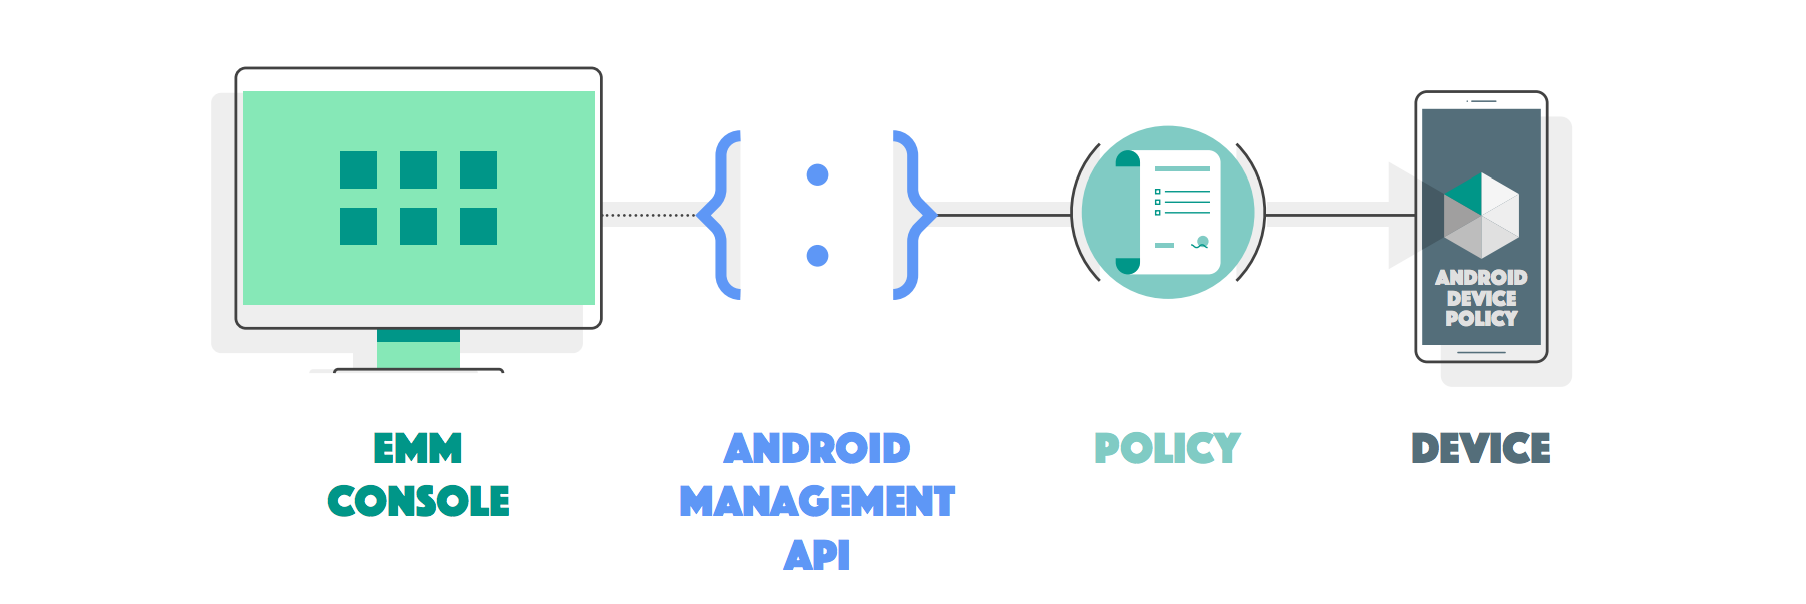 Android Management overview.